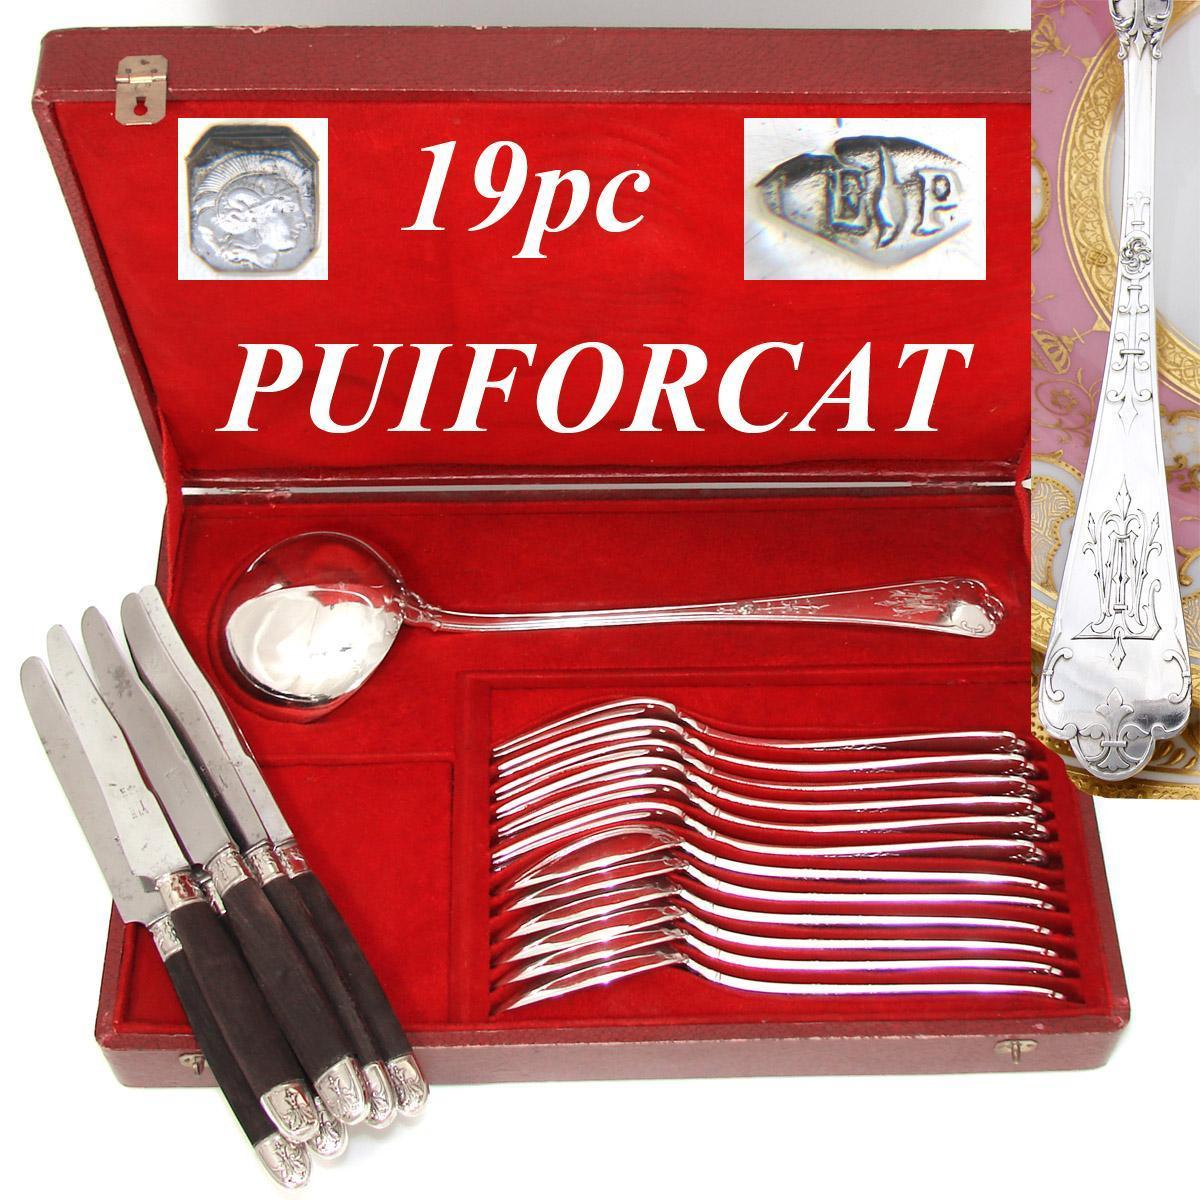 "Antique French PUIFORCAT Sterling Silver 18pc Dinner Flatware Set, Gothic Pattern, 13"" Ladle, Orig. Box"